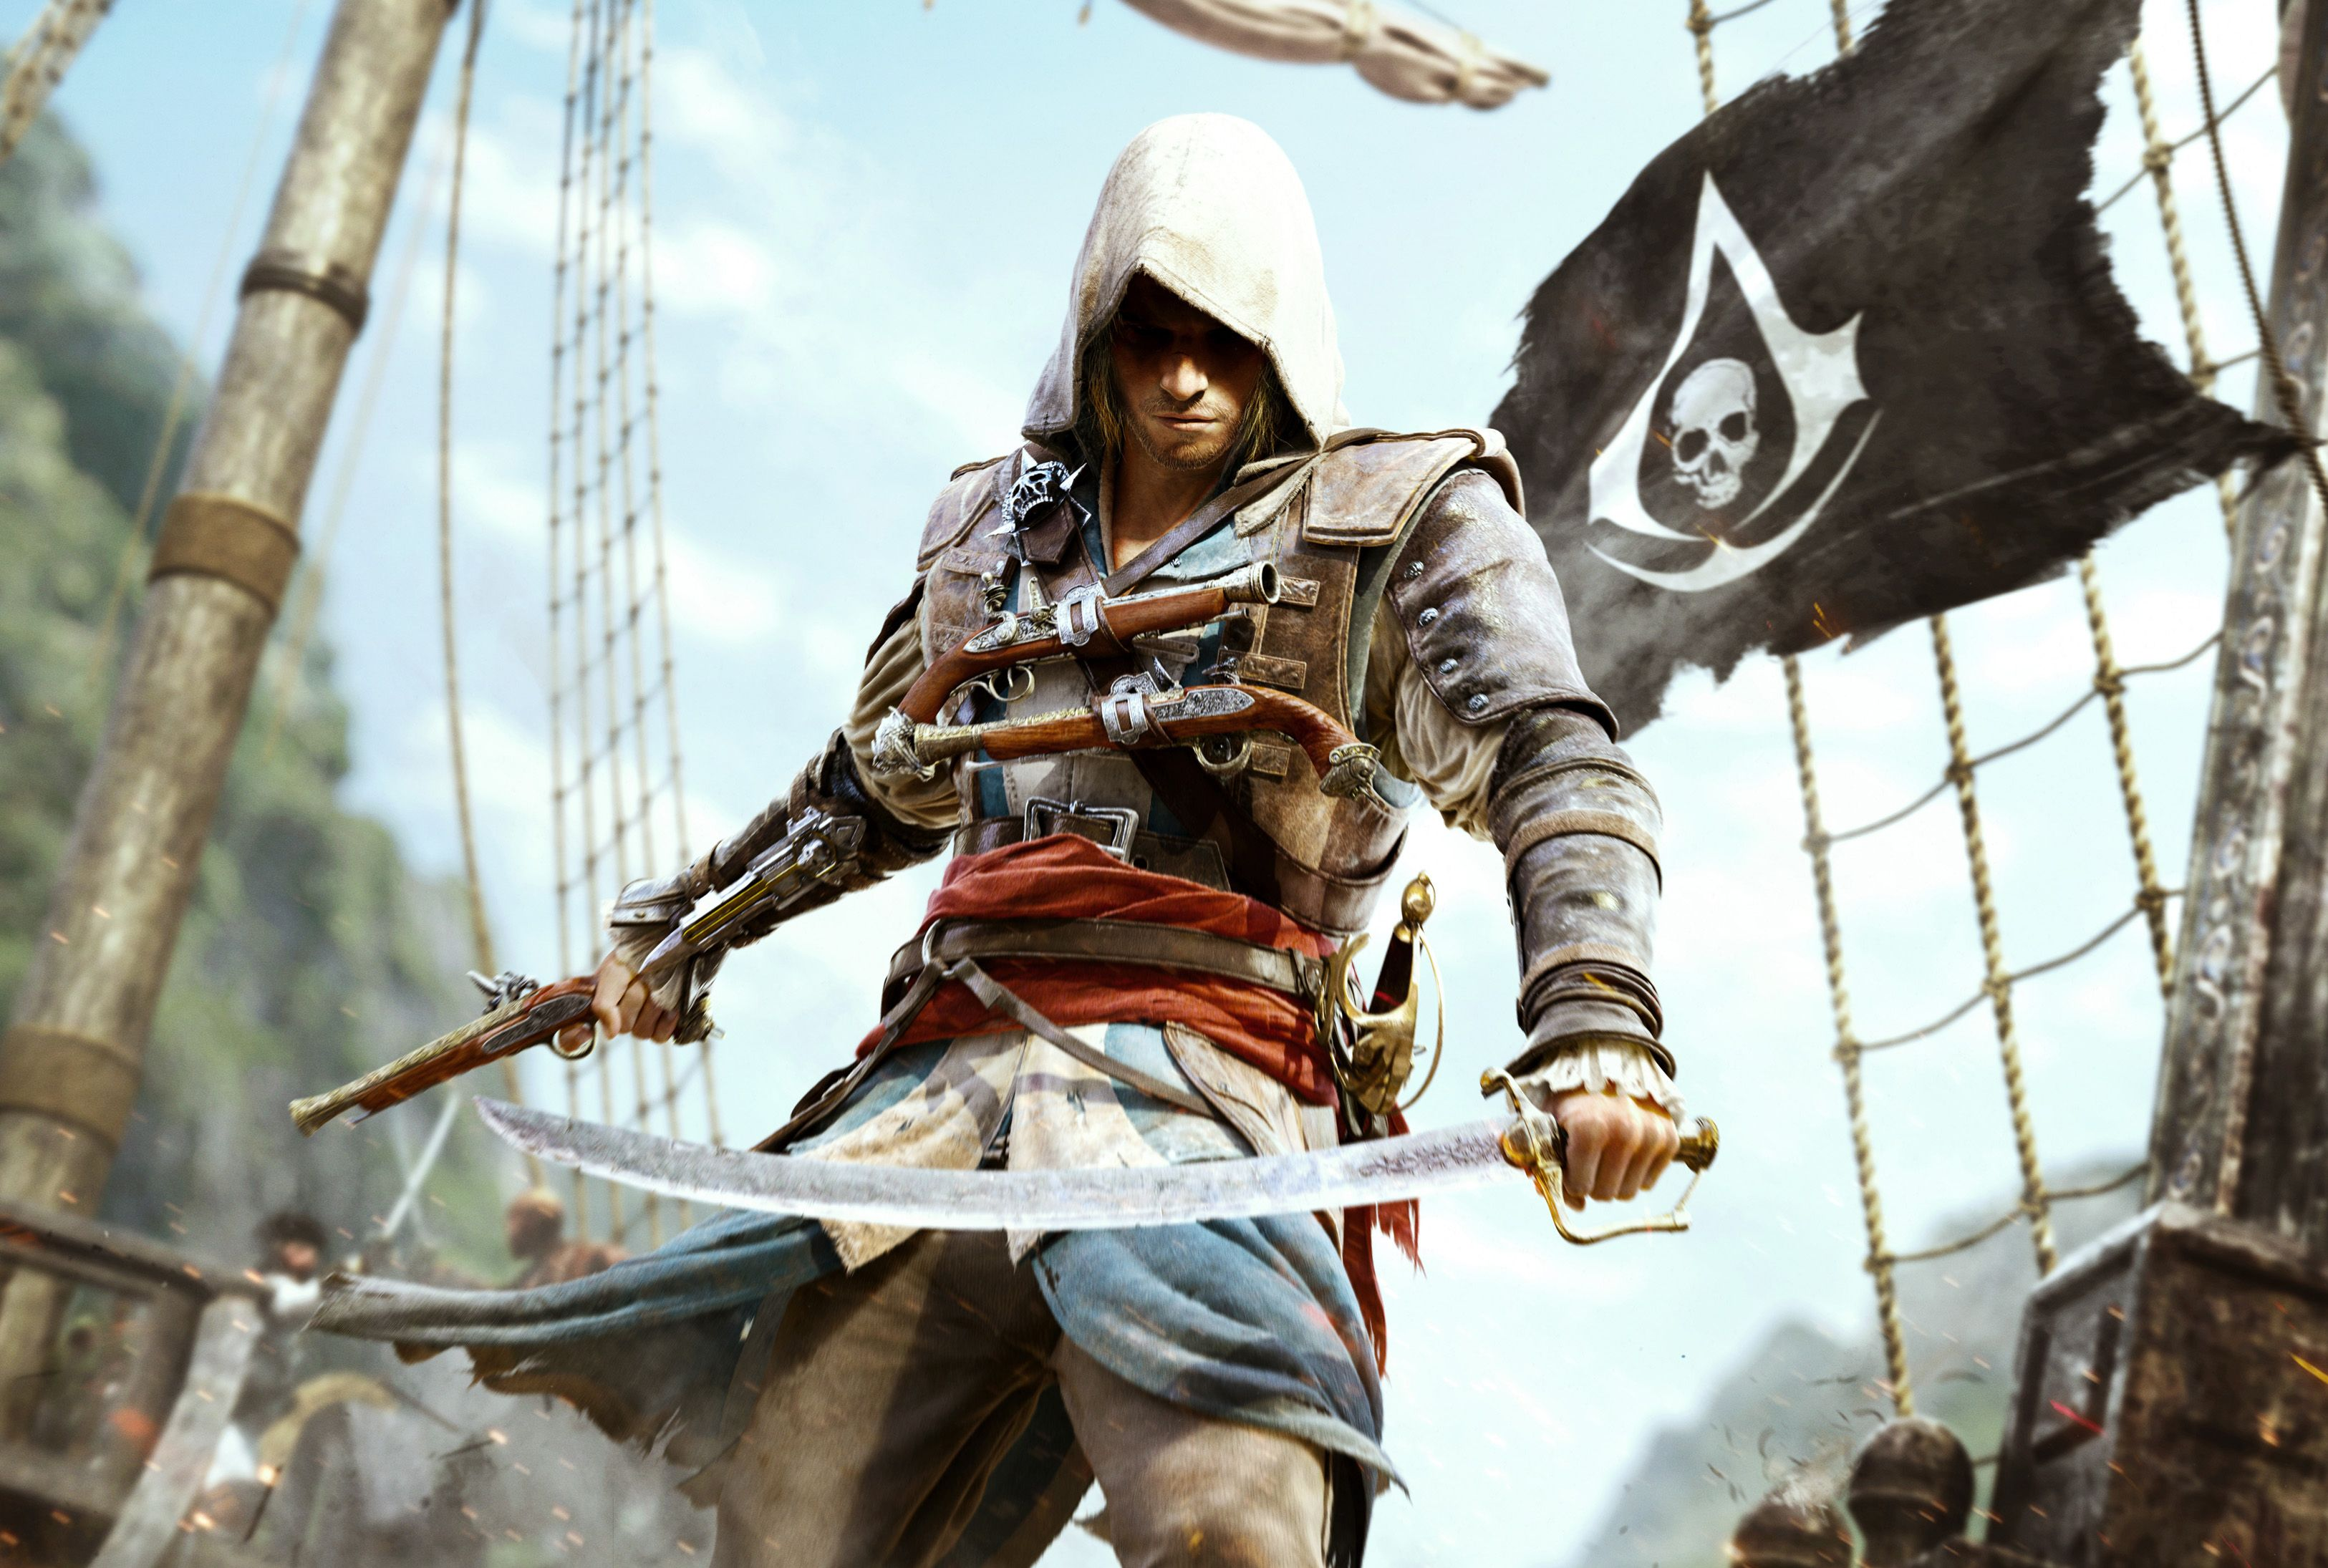 Assassin S Creed Iv Black Flag Hd Wallpapers 3 3251 X 2190 Assassins Creed Assassins Creed Black Flag Assassins Creed 4